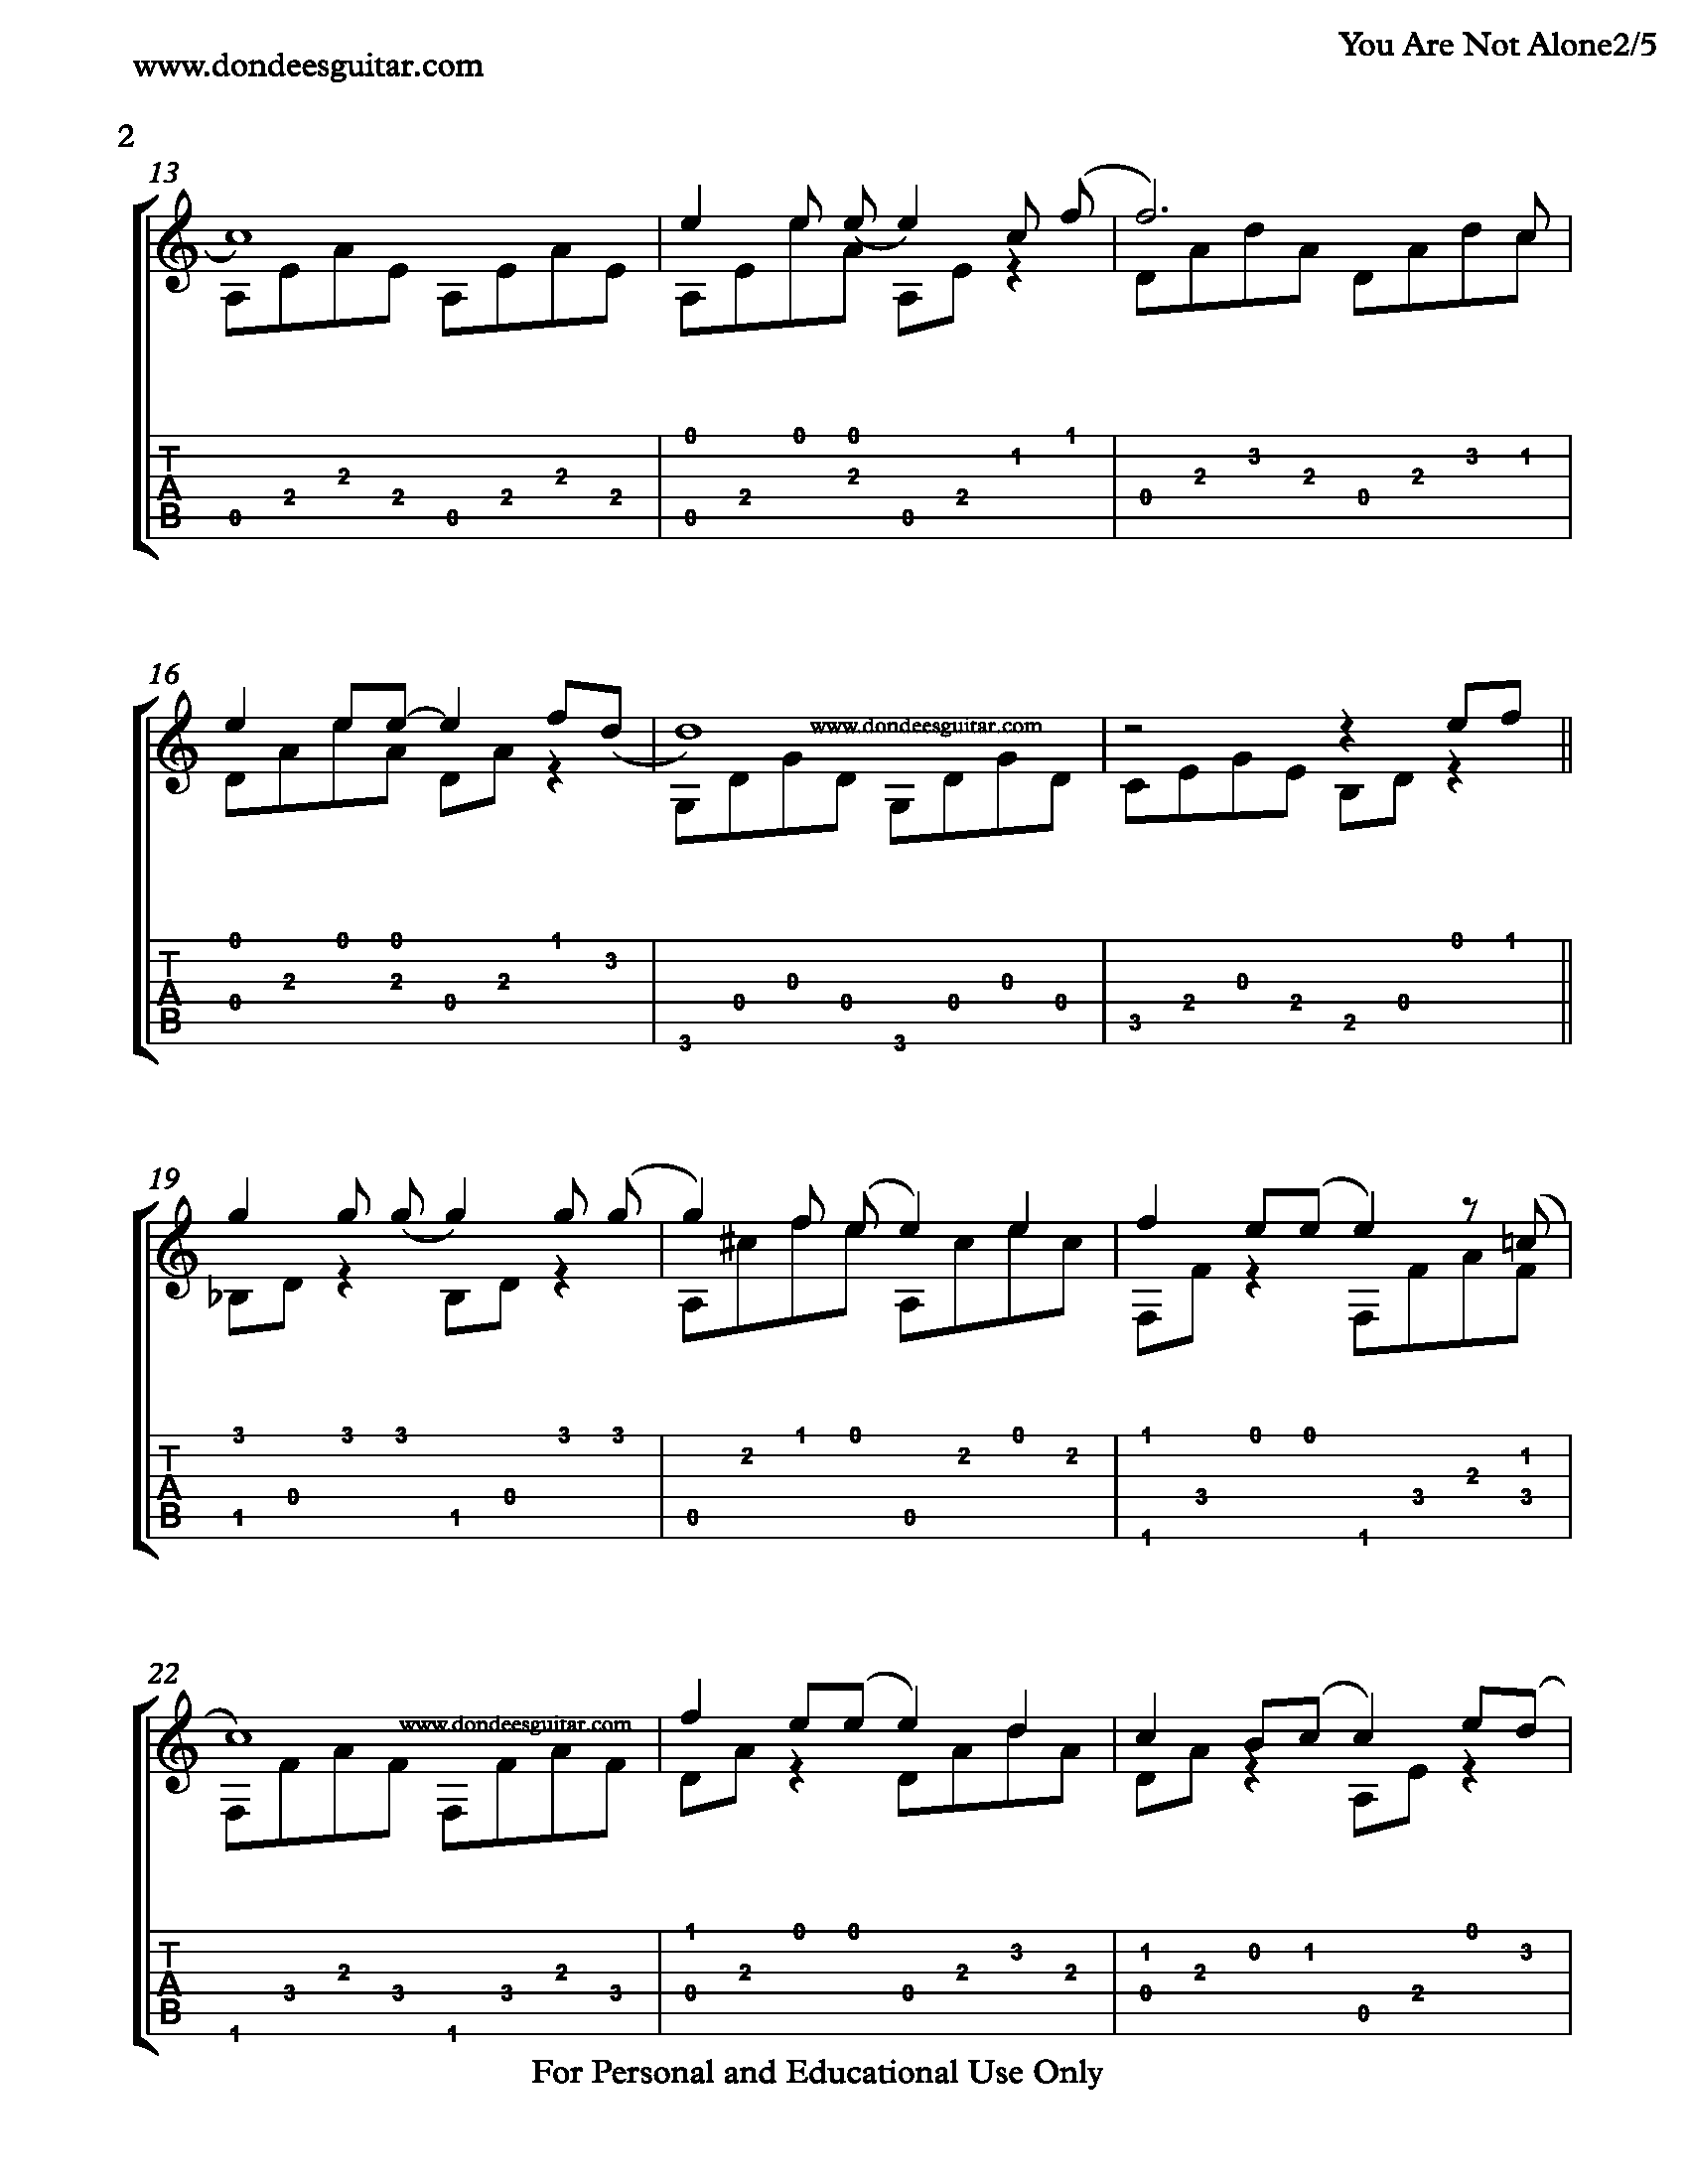 You Are Not Alone Fingerstyle Tabs